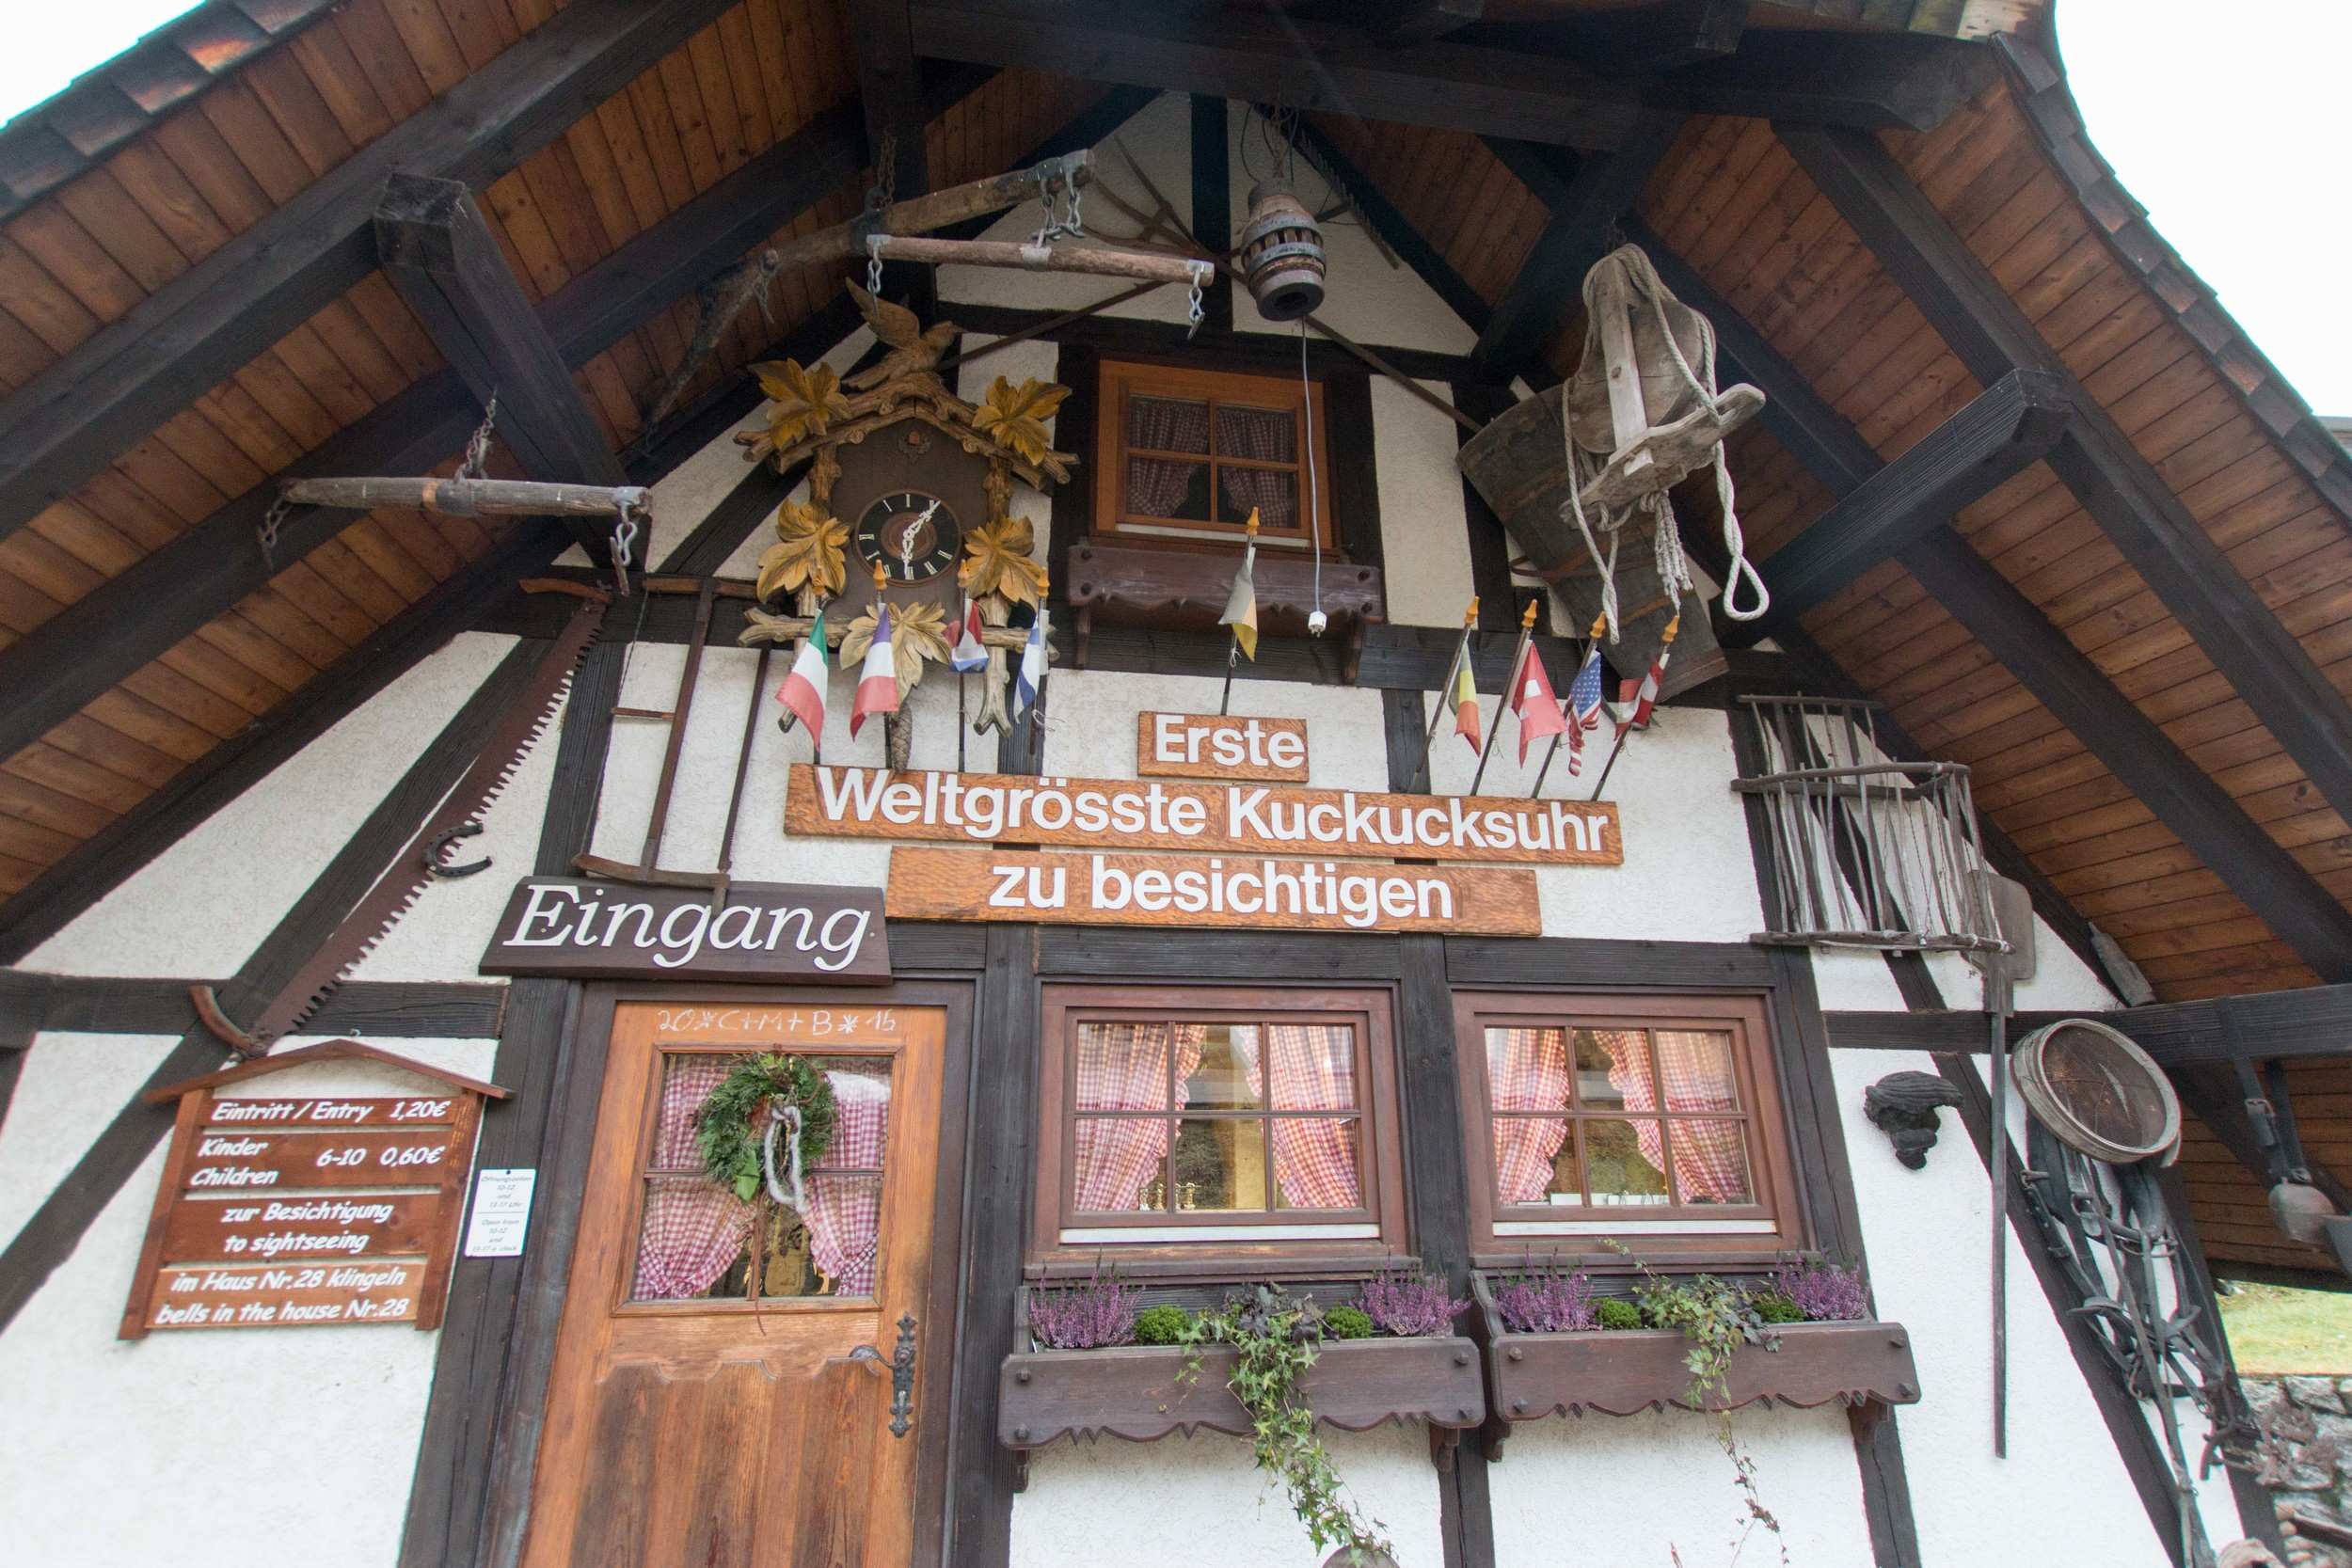 Entrance to the World's Largest Cuckoo clock. Unfortunately it was closed and we couldn't see it.